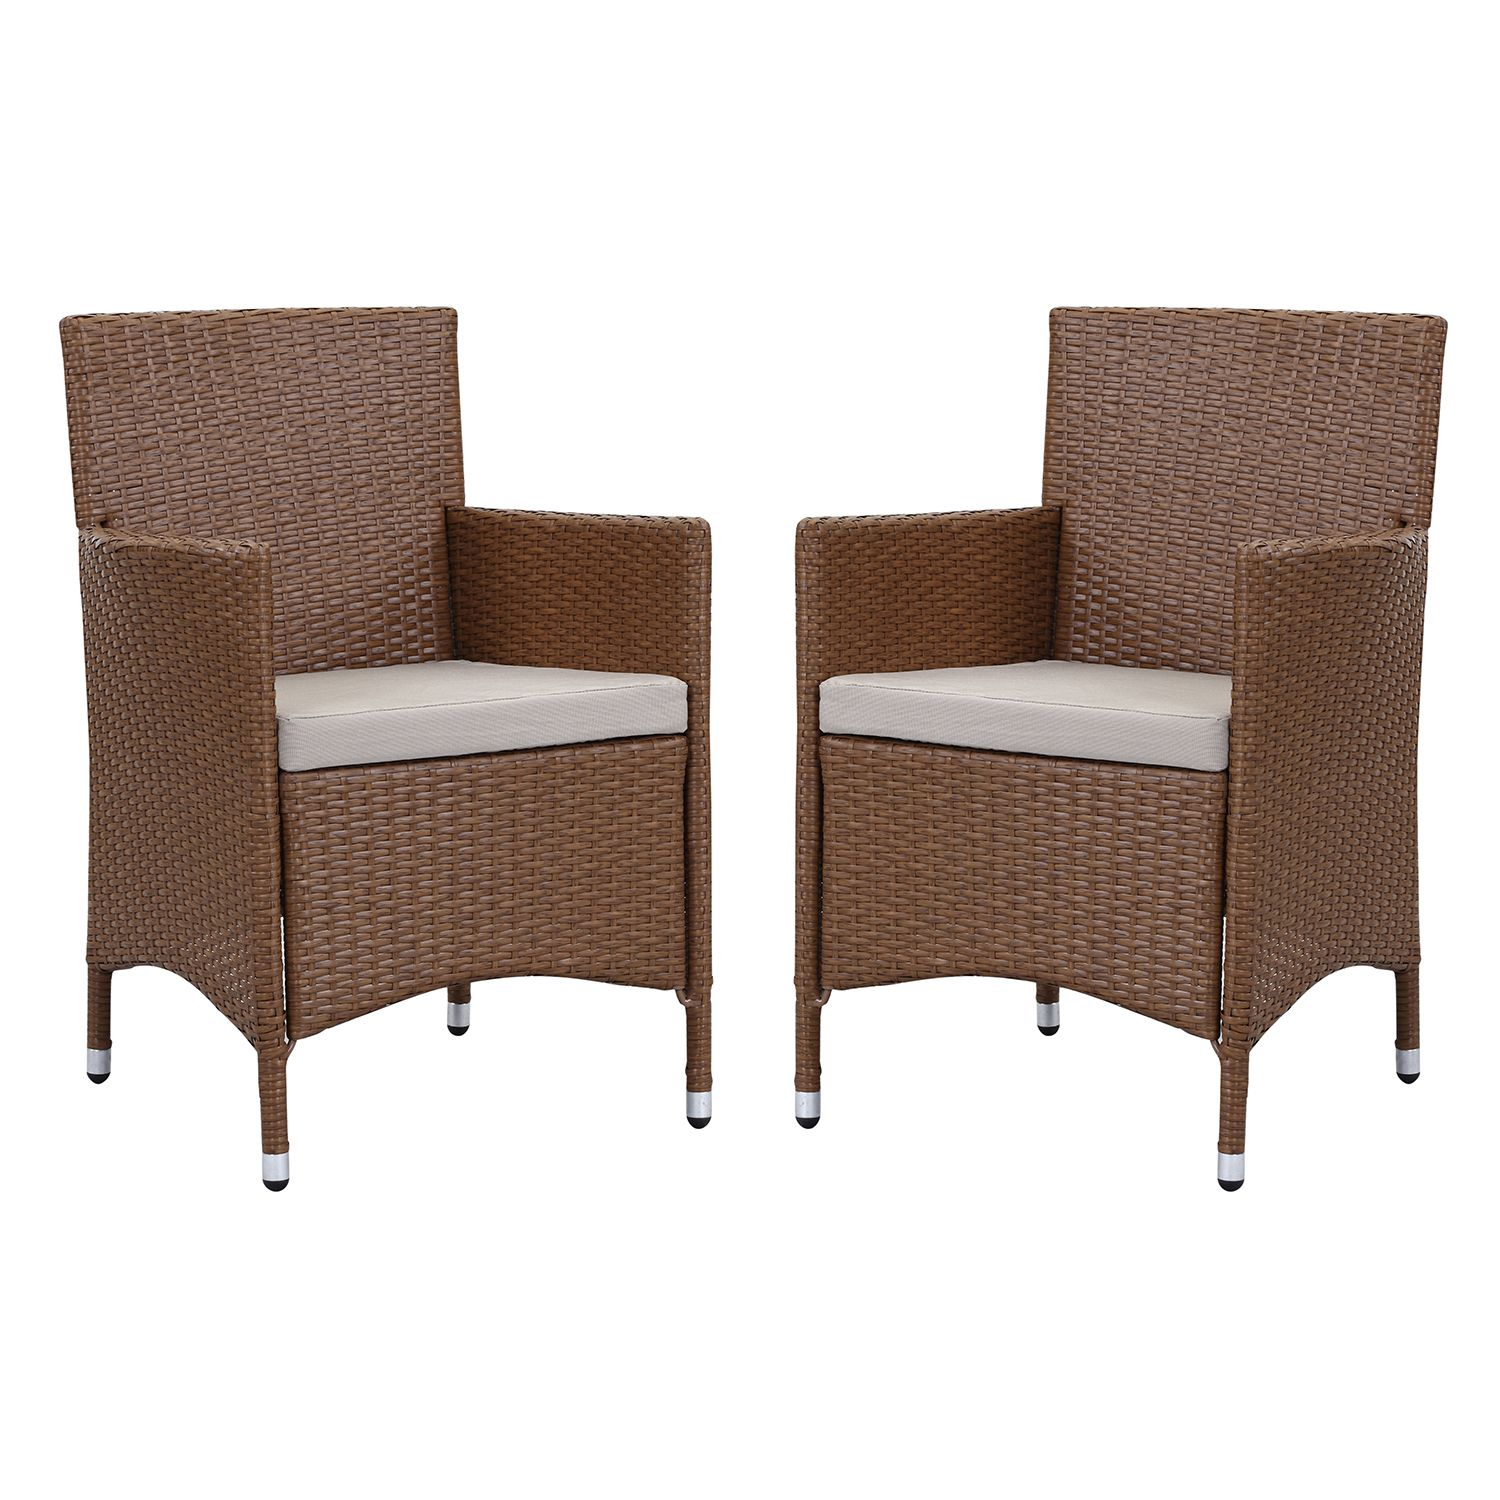 Safavieh Kendrick Outdoor Chair 2 Piece Set